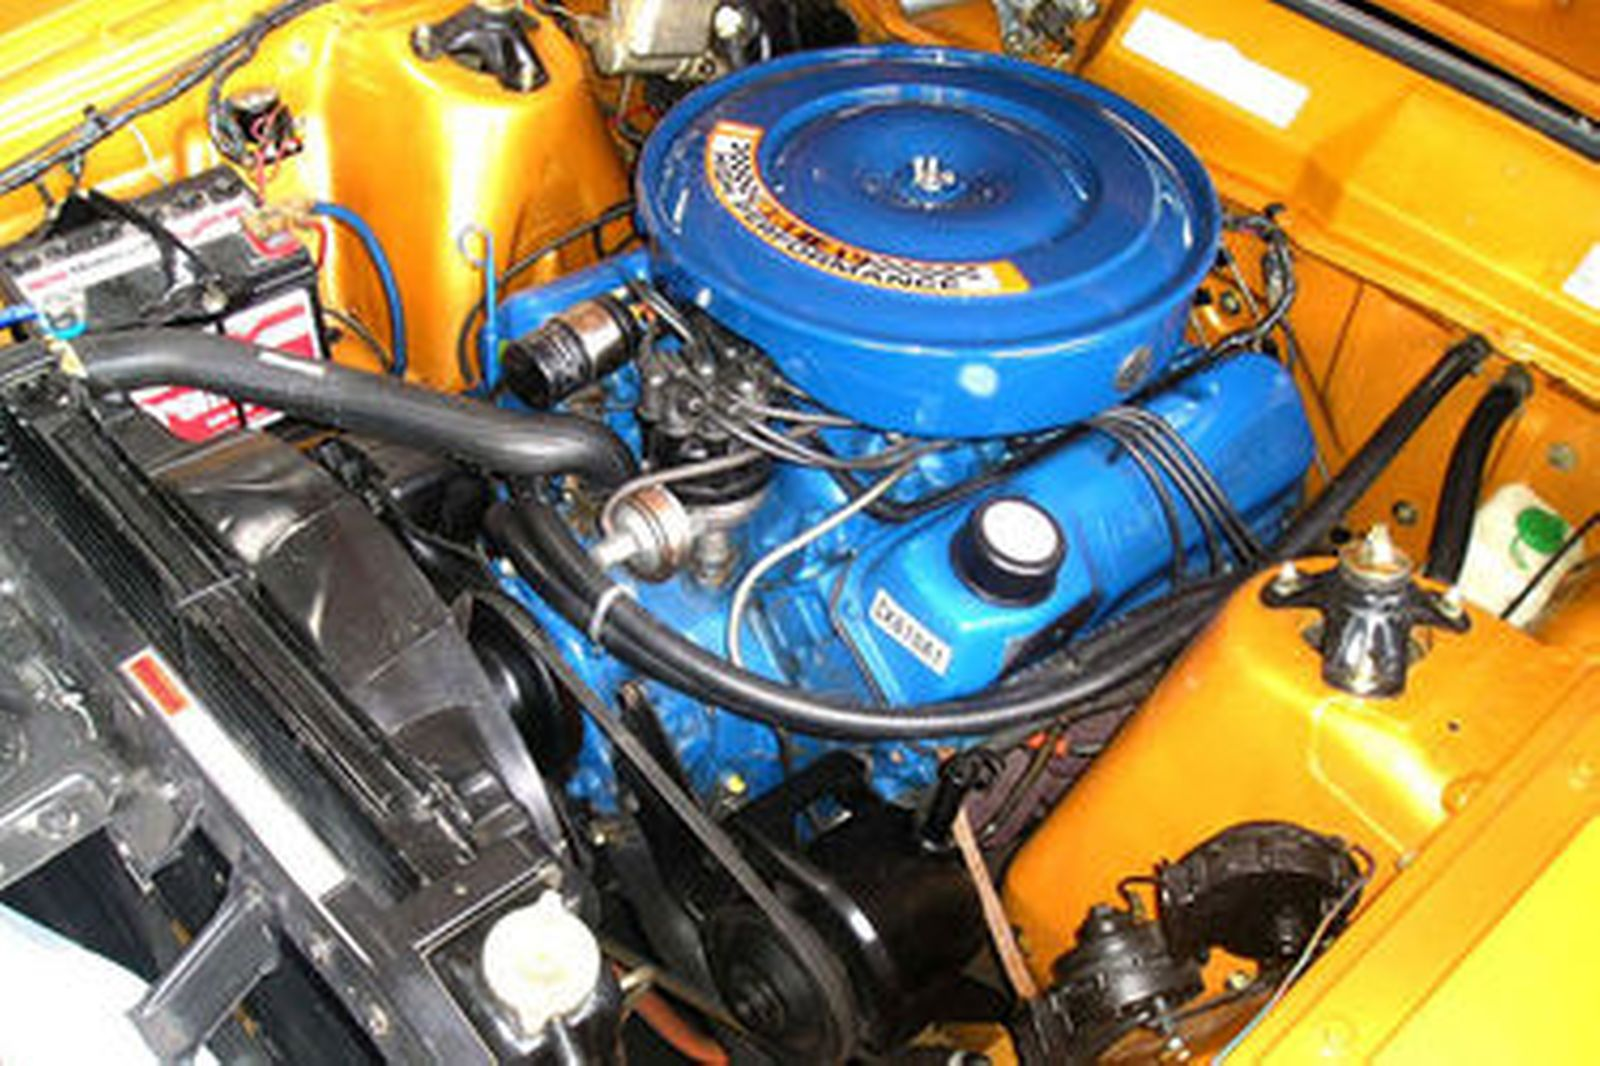 Dscf besides Butacas likewise Img in addition Ford Falcon Xa Gt Coupe as well P X. on 63 ford falcon